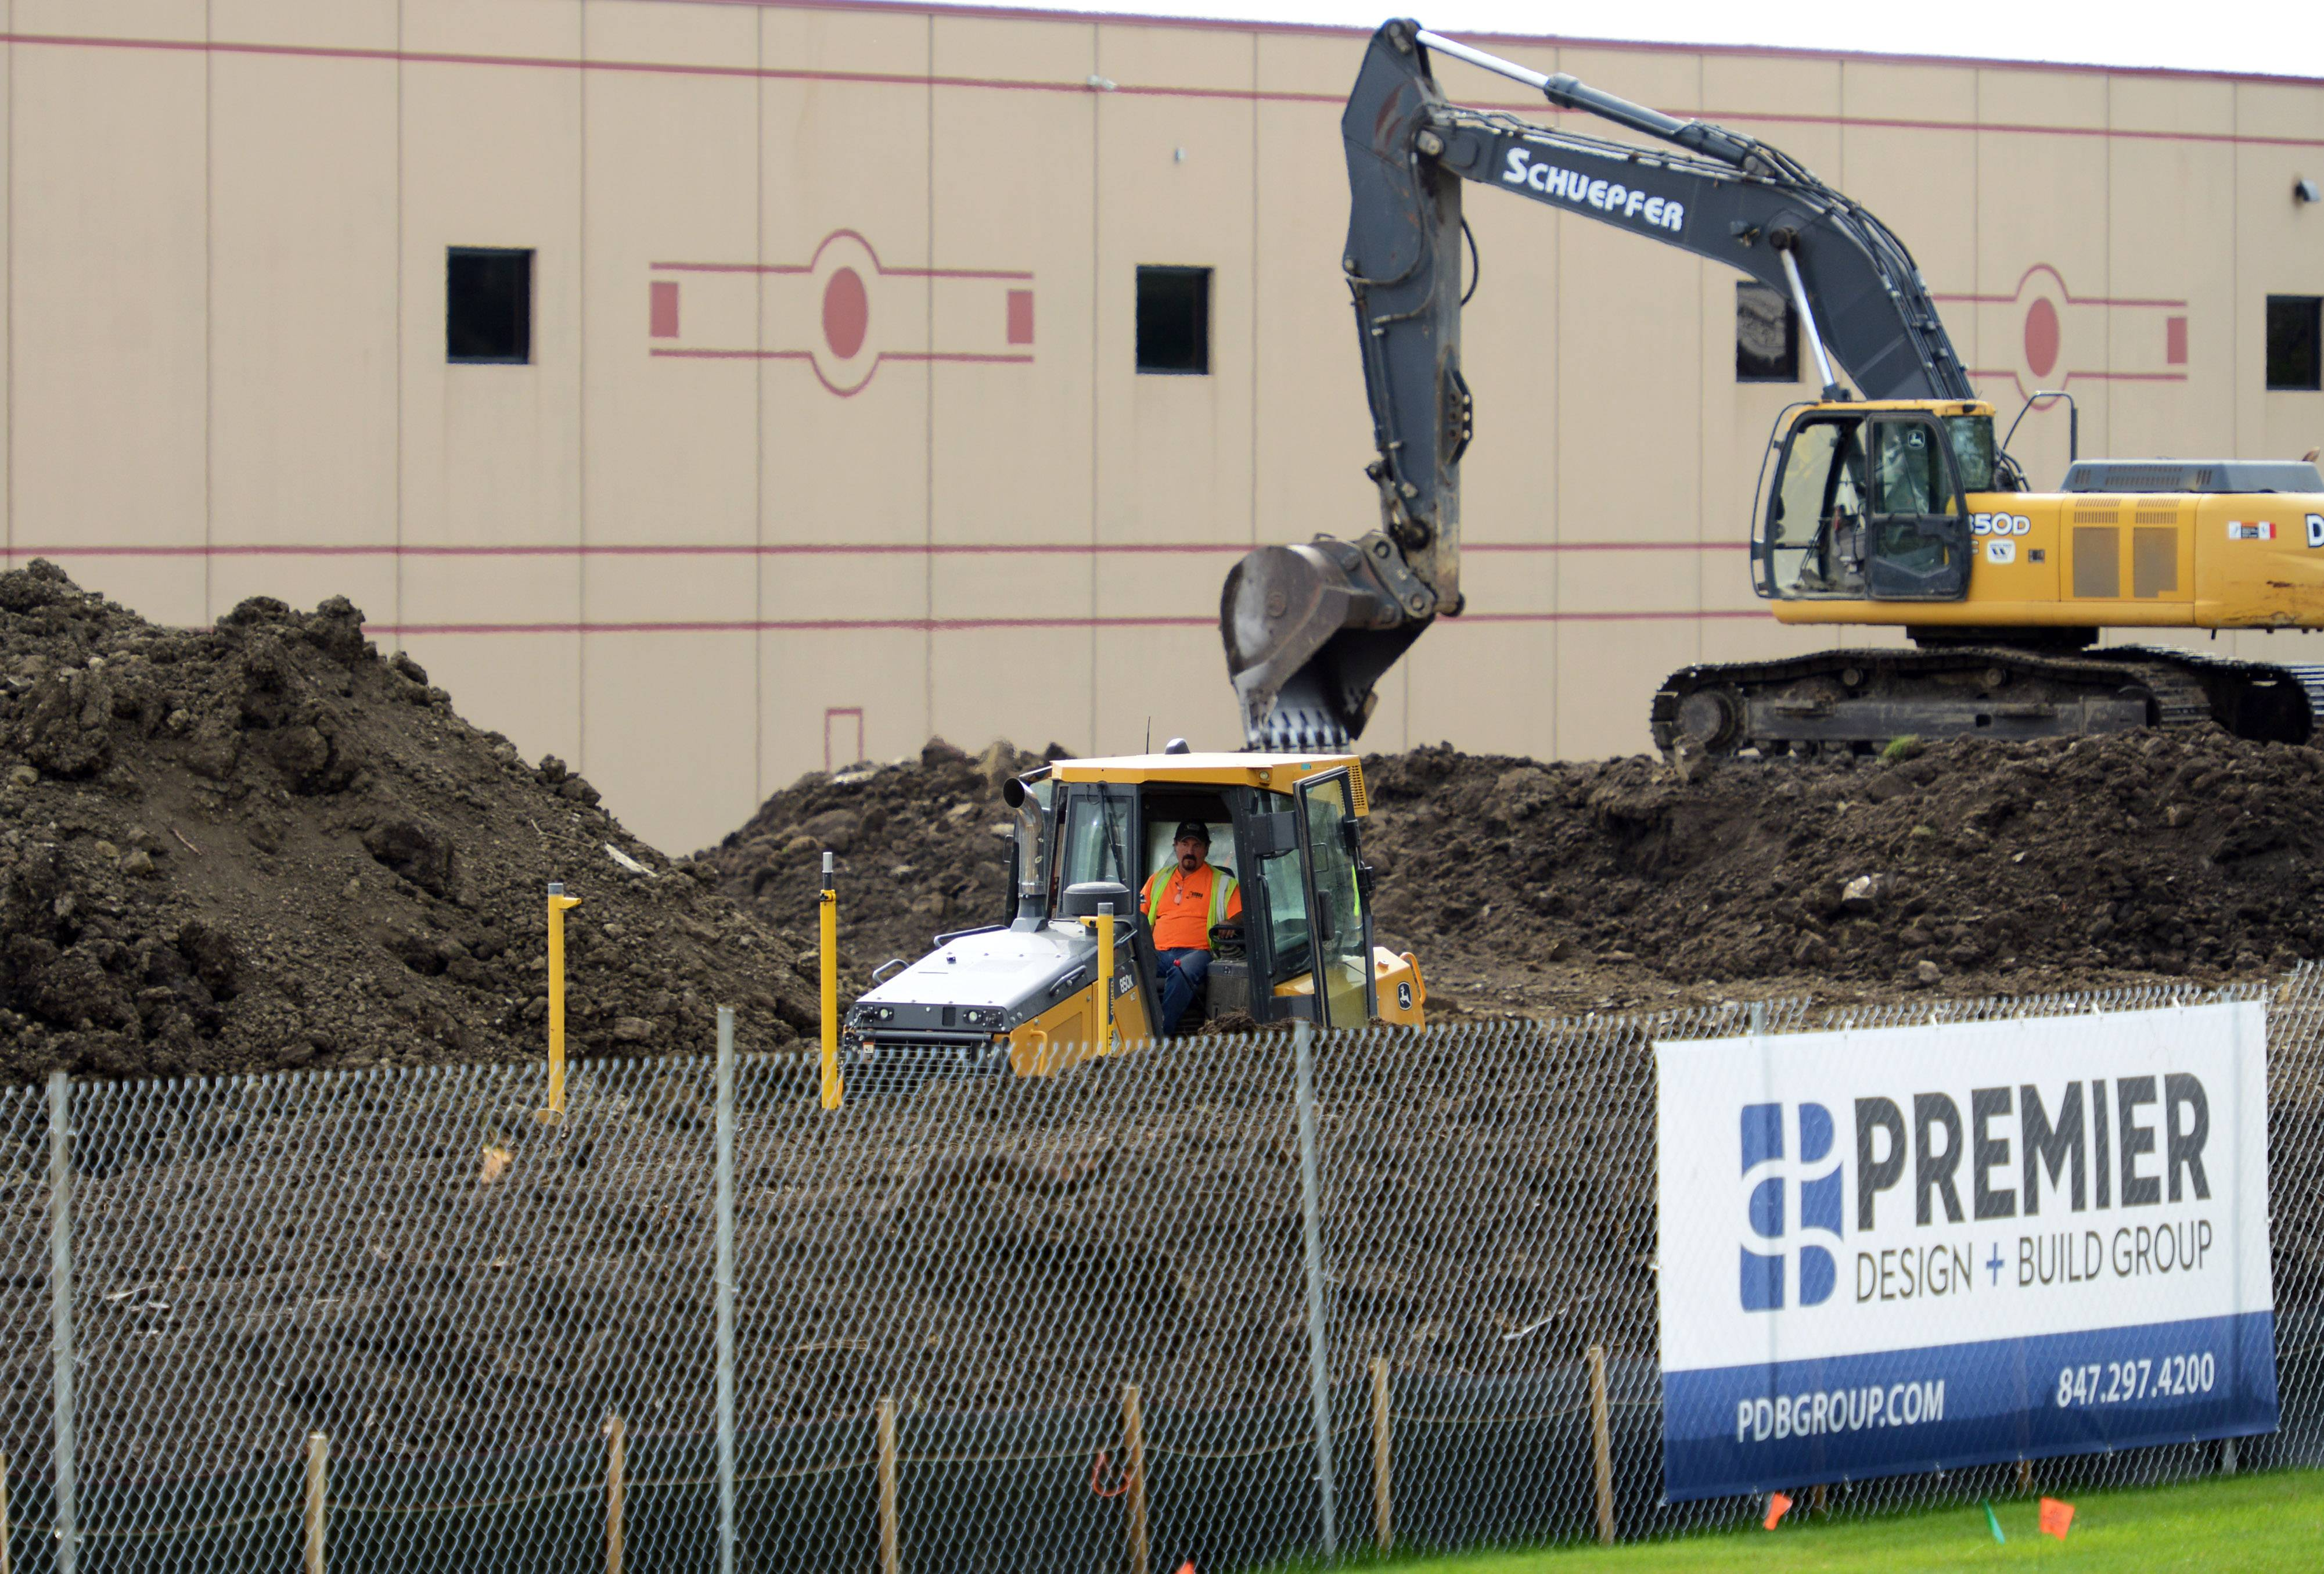 Power equipment company grows again in Lake Zurich